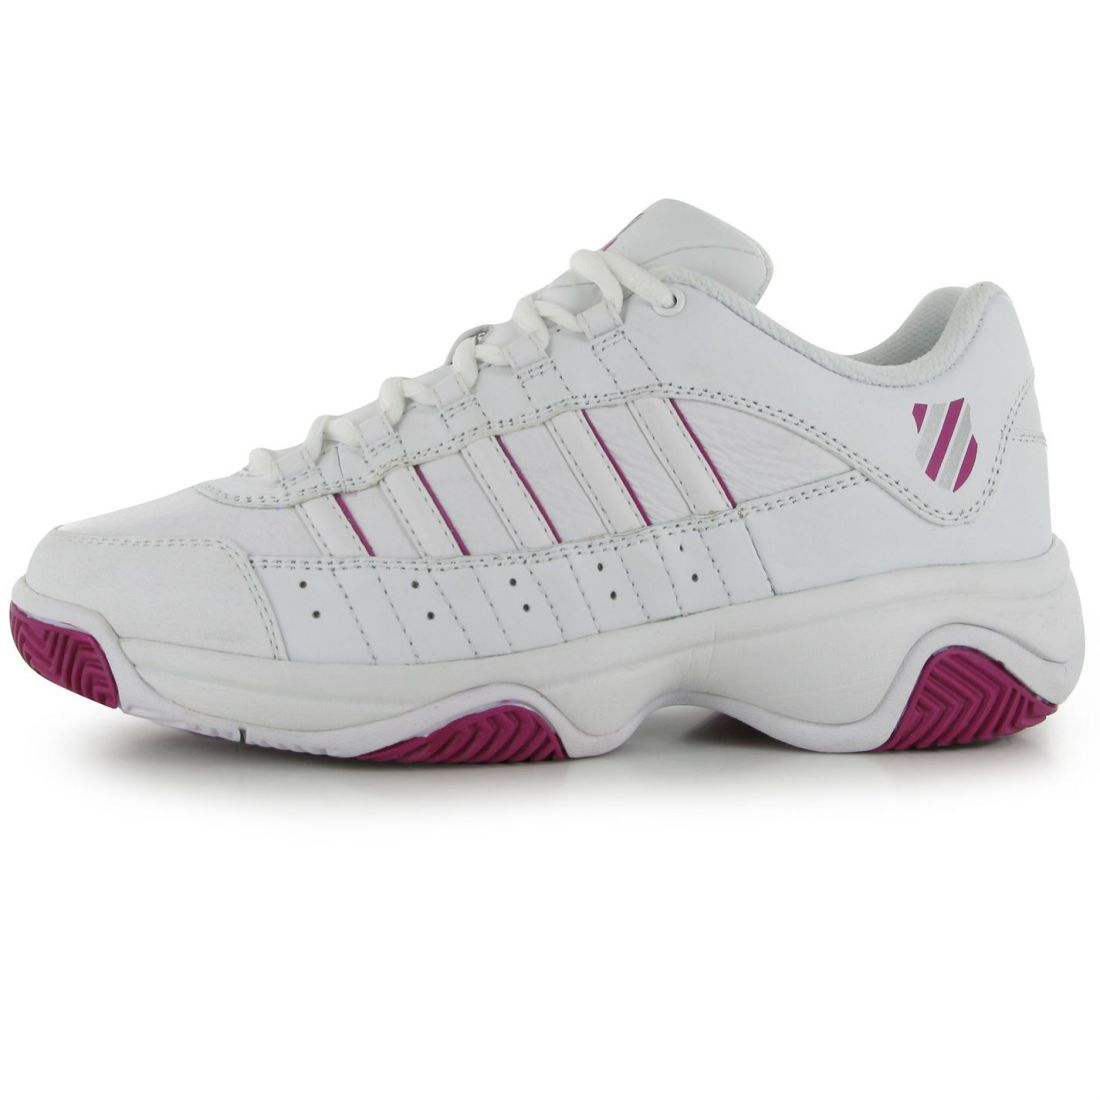 low priced 7f589 564ca K-Swiss-Womens-Court-Blast-Ladies-Tennis-Shoes-